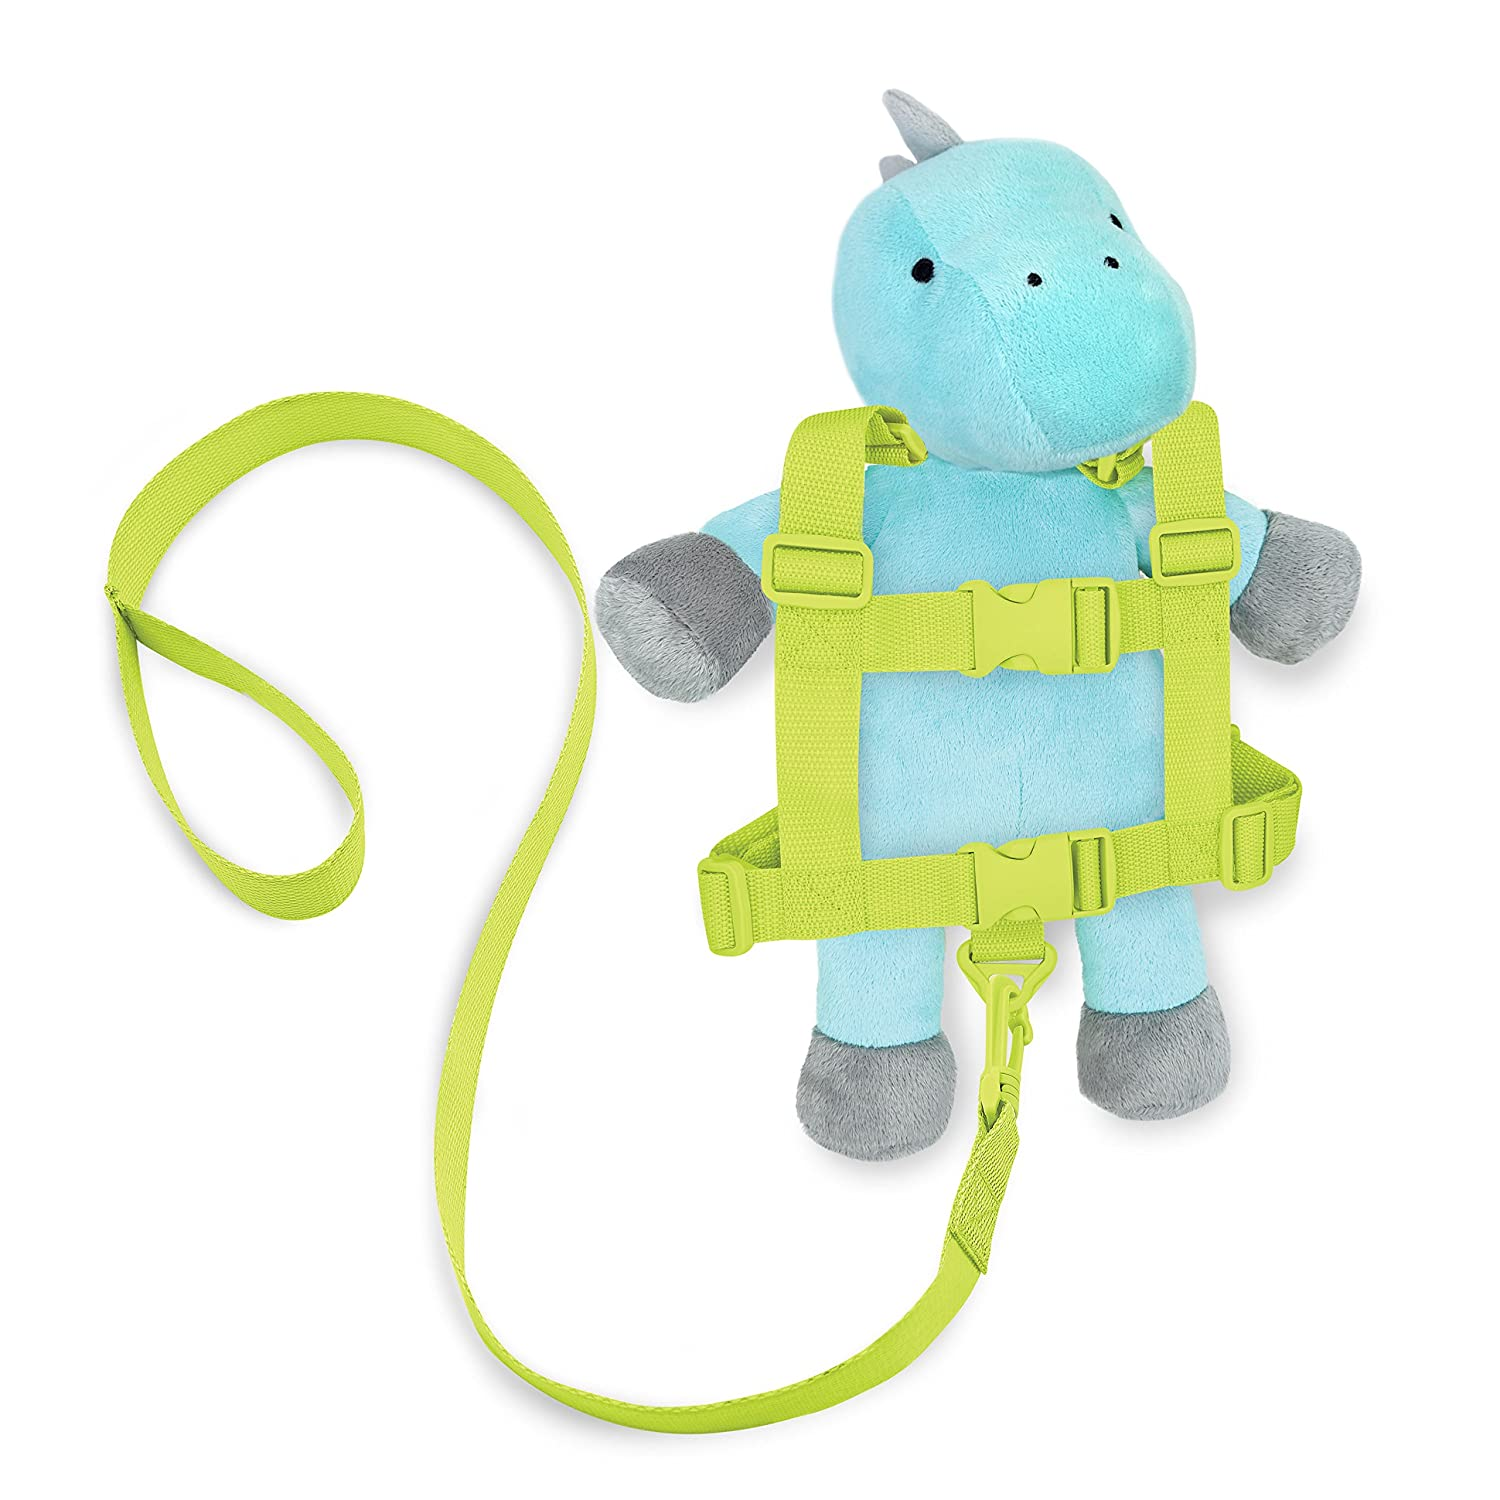 Travel Bug Toddler Unicorn 2-in-1 Safety Harness, White/Pink/Rainbow Goldbug TB00006-1SZ-AMZ